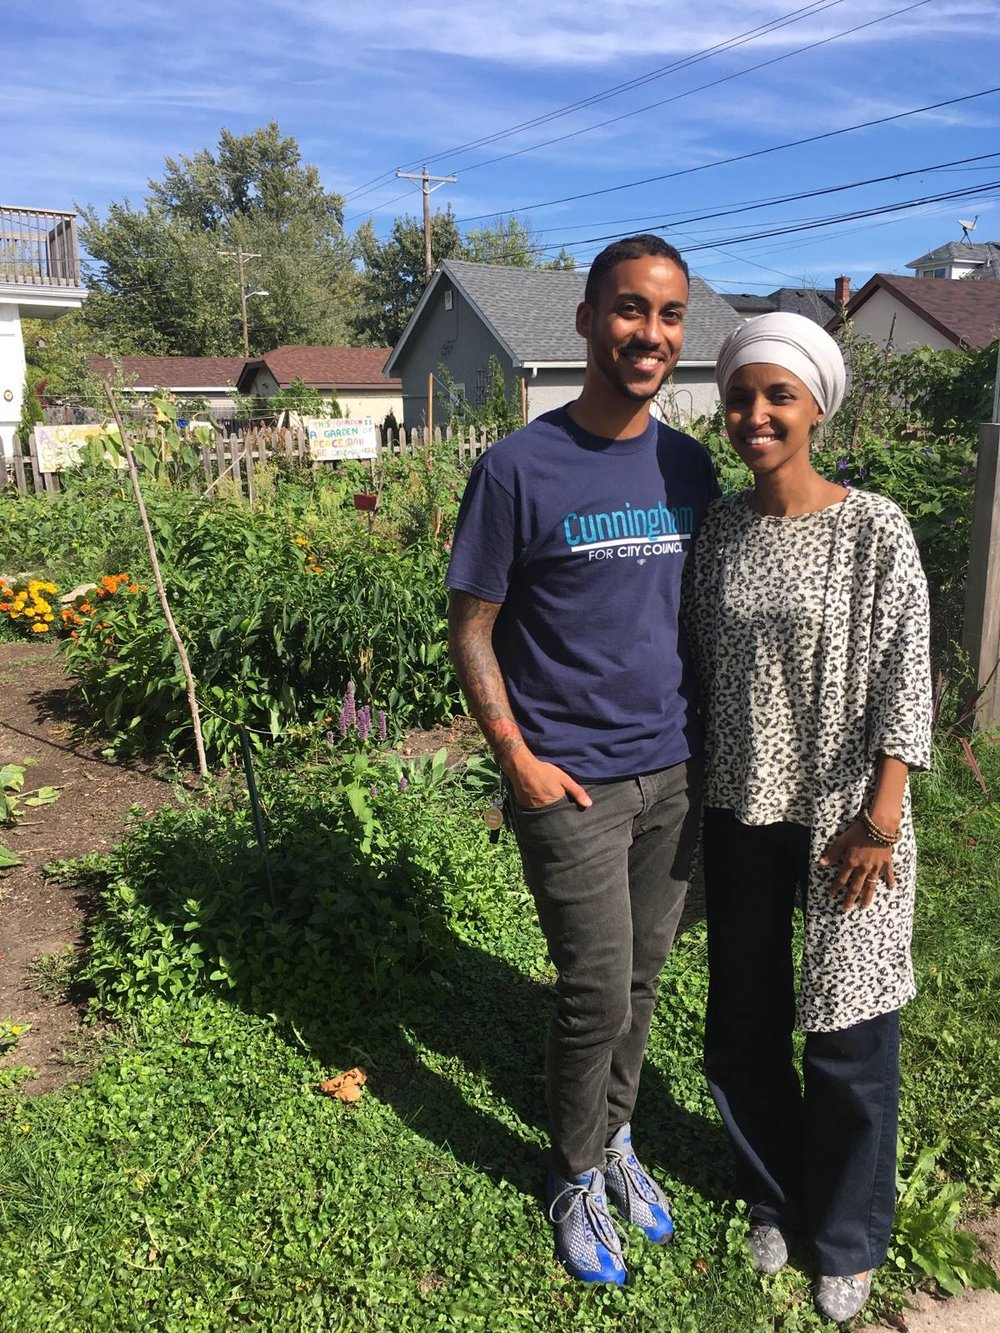 phillipe-and-ilhan-omar-at-story-garden-endorsement.jpg